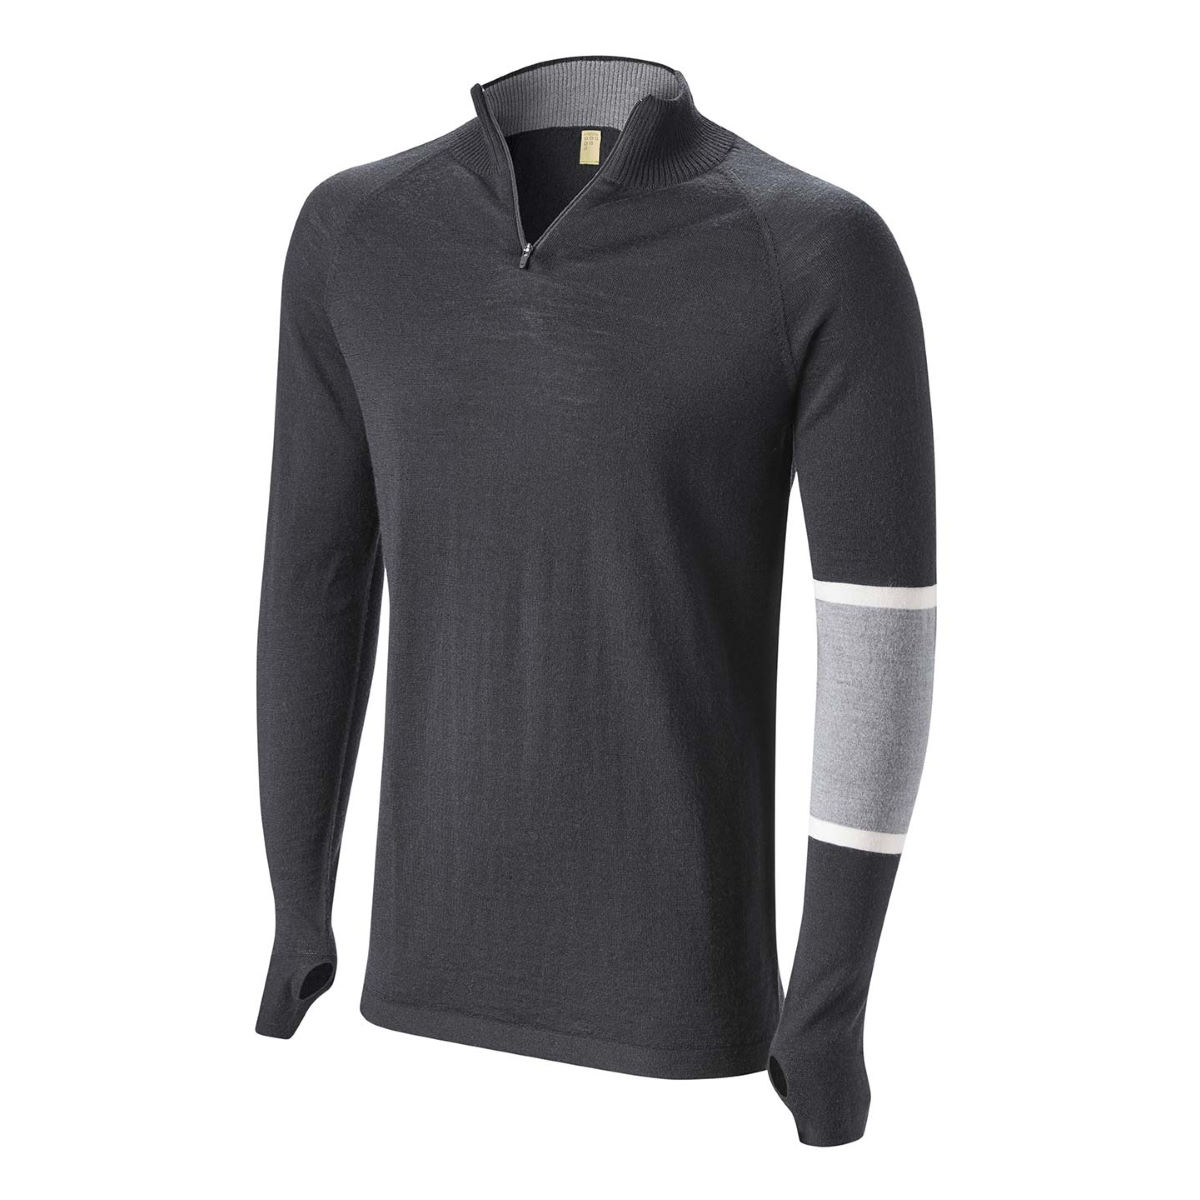 FINDRA Lewis Merino Zip Neck Top   Long Sleeve Cycling Jerseys